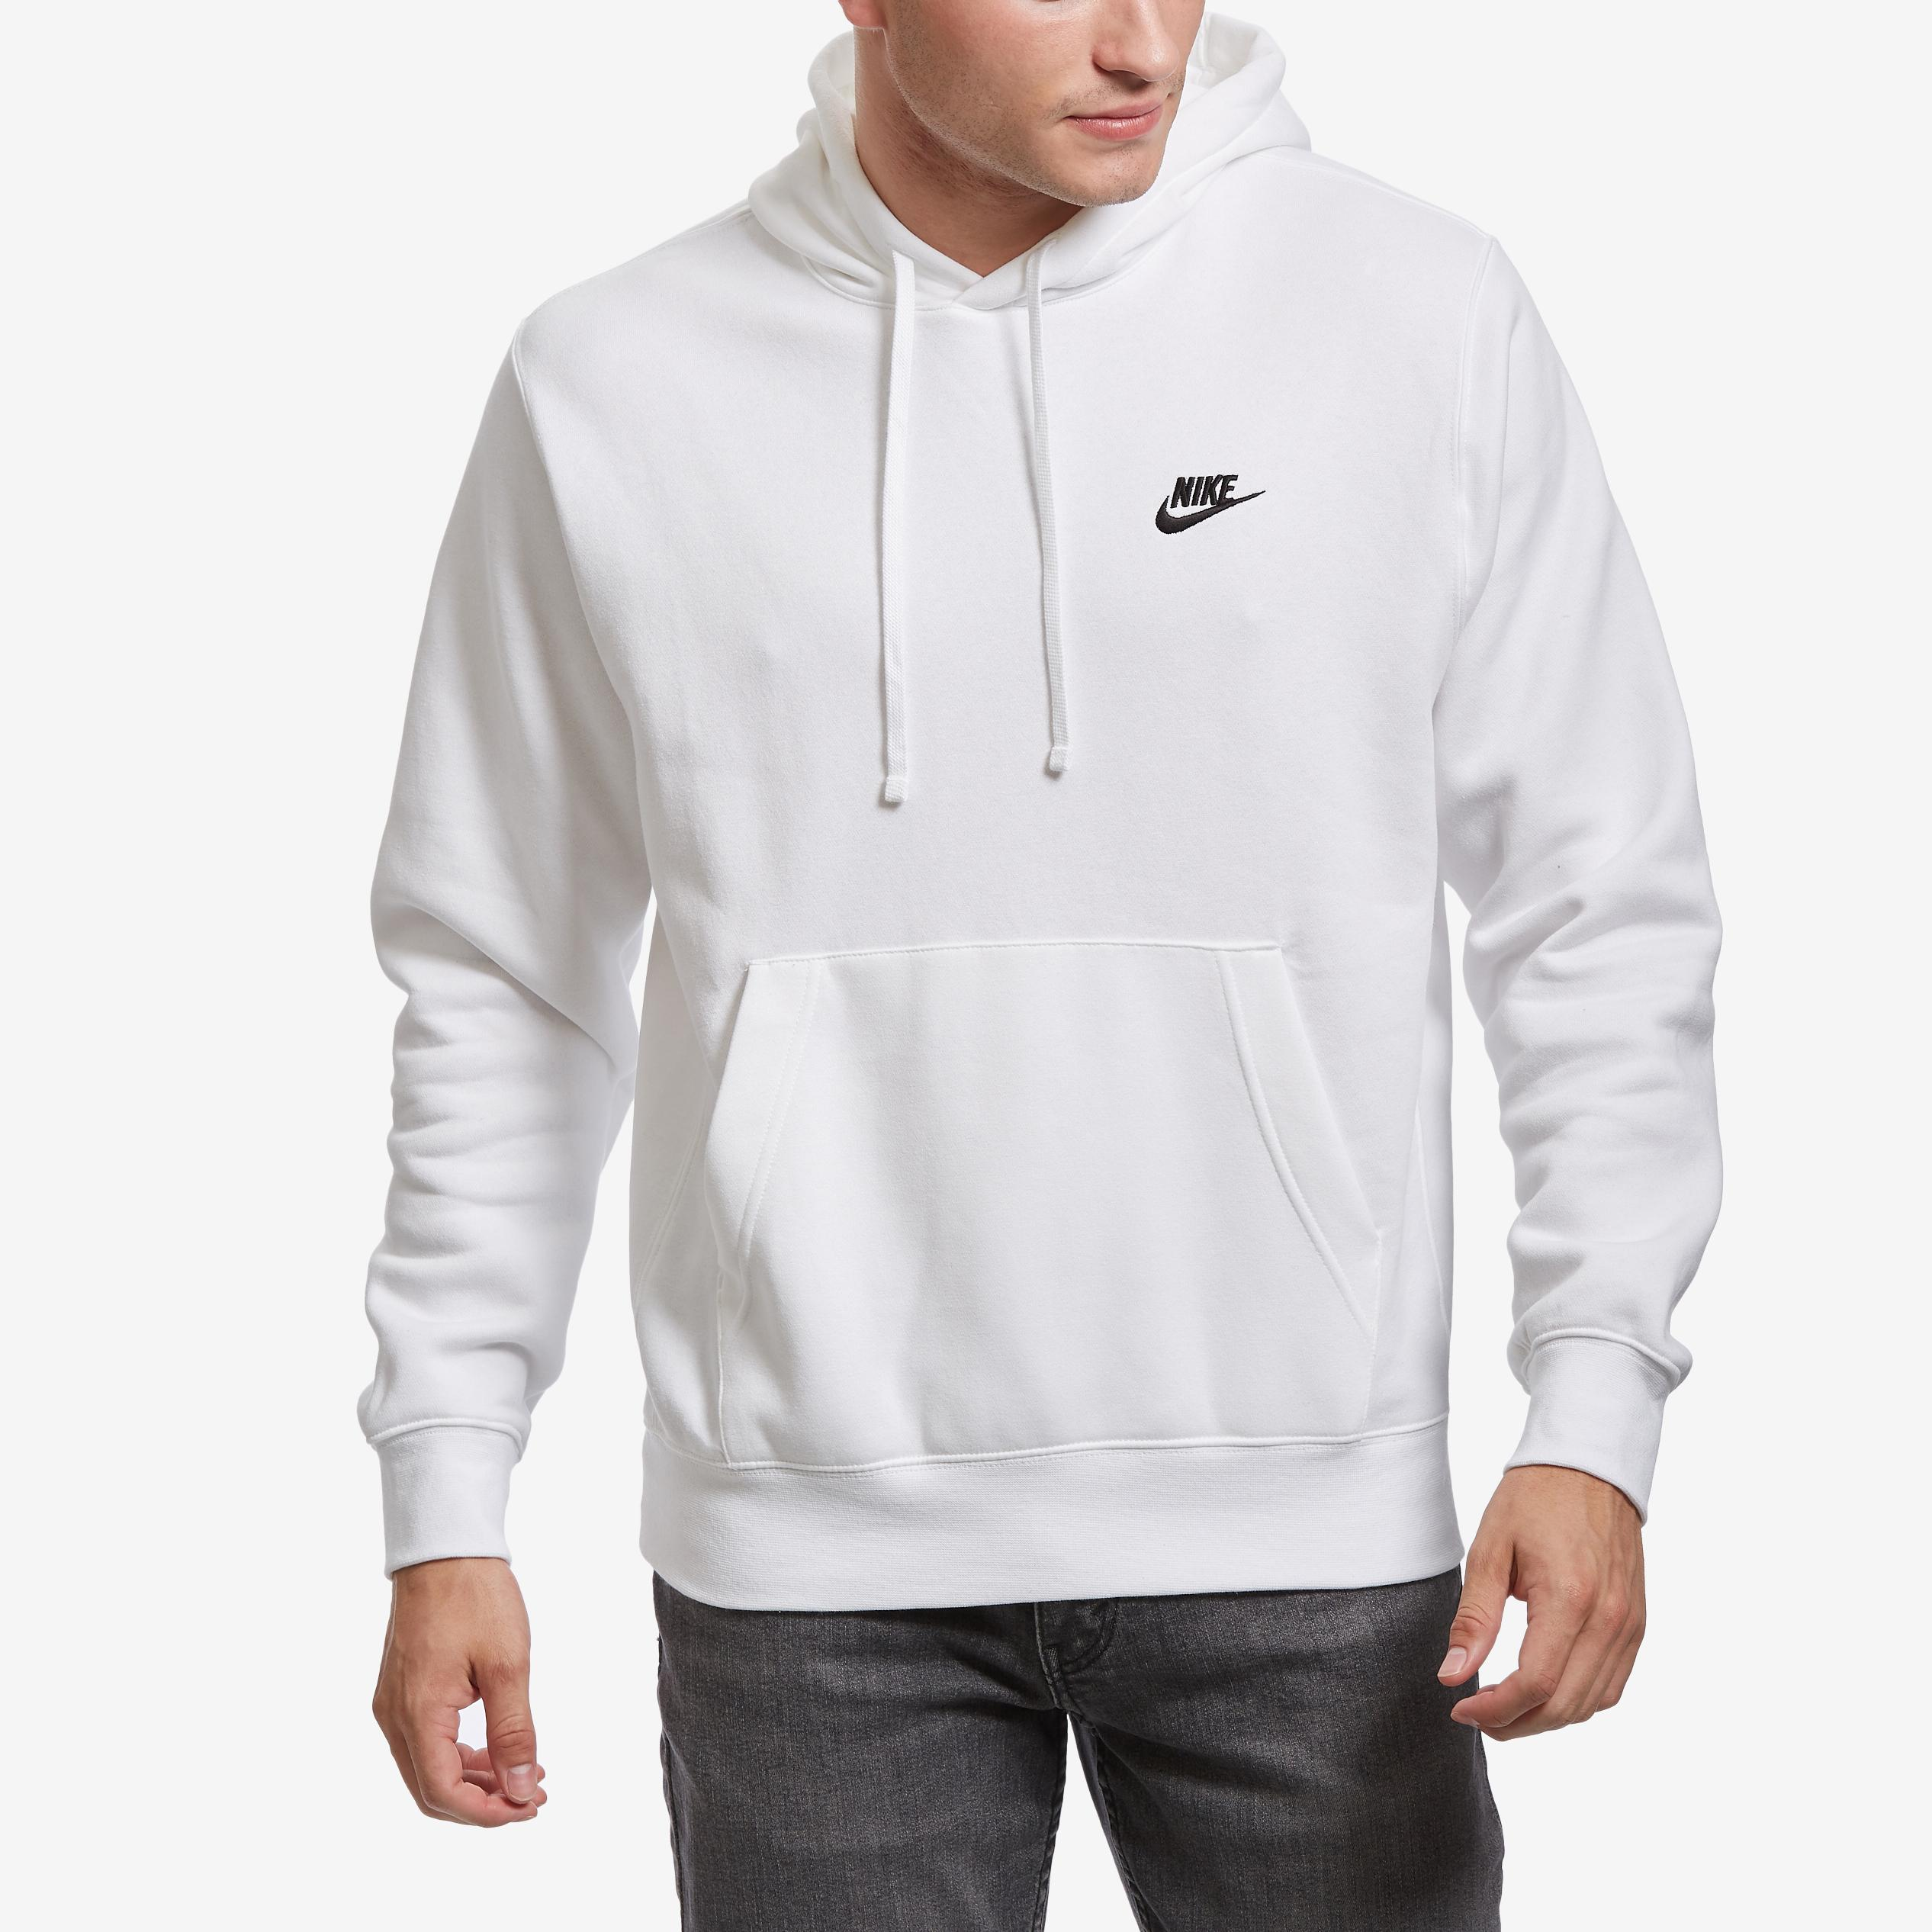 sale cheap for discount newest Nike Sportswear Club Fleece Pullover Hoodie Available In ...